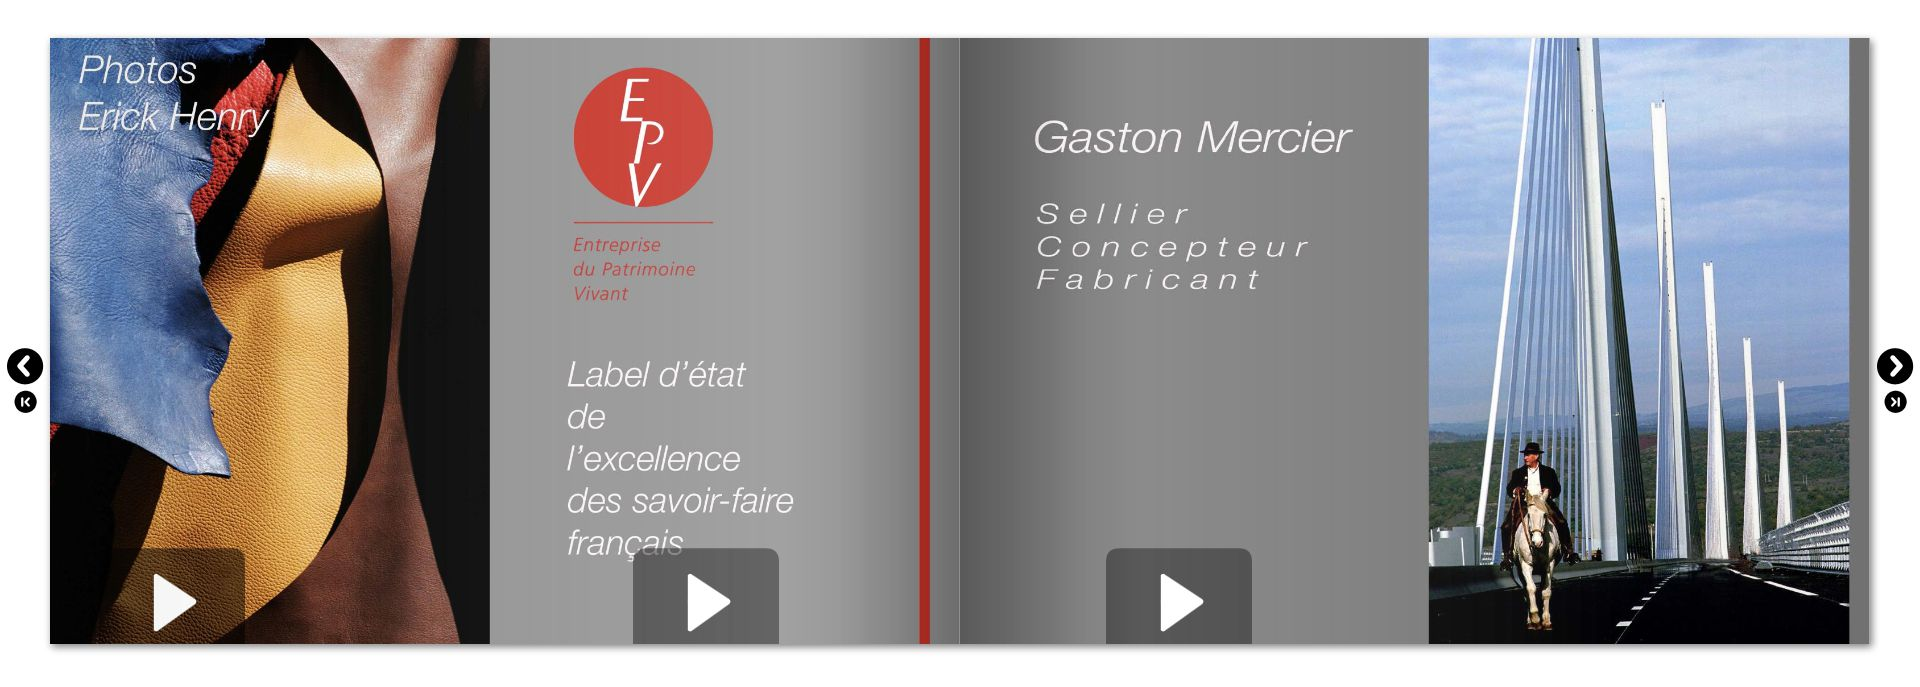 Ebook-Gaston-Mercier2